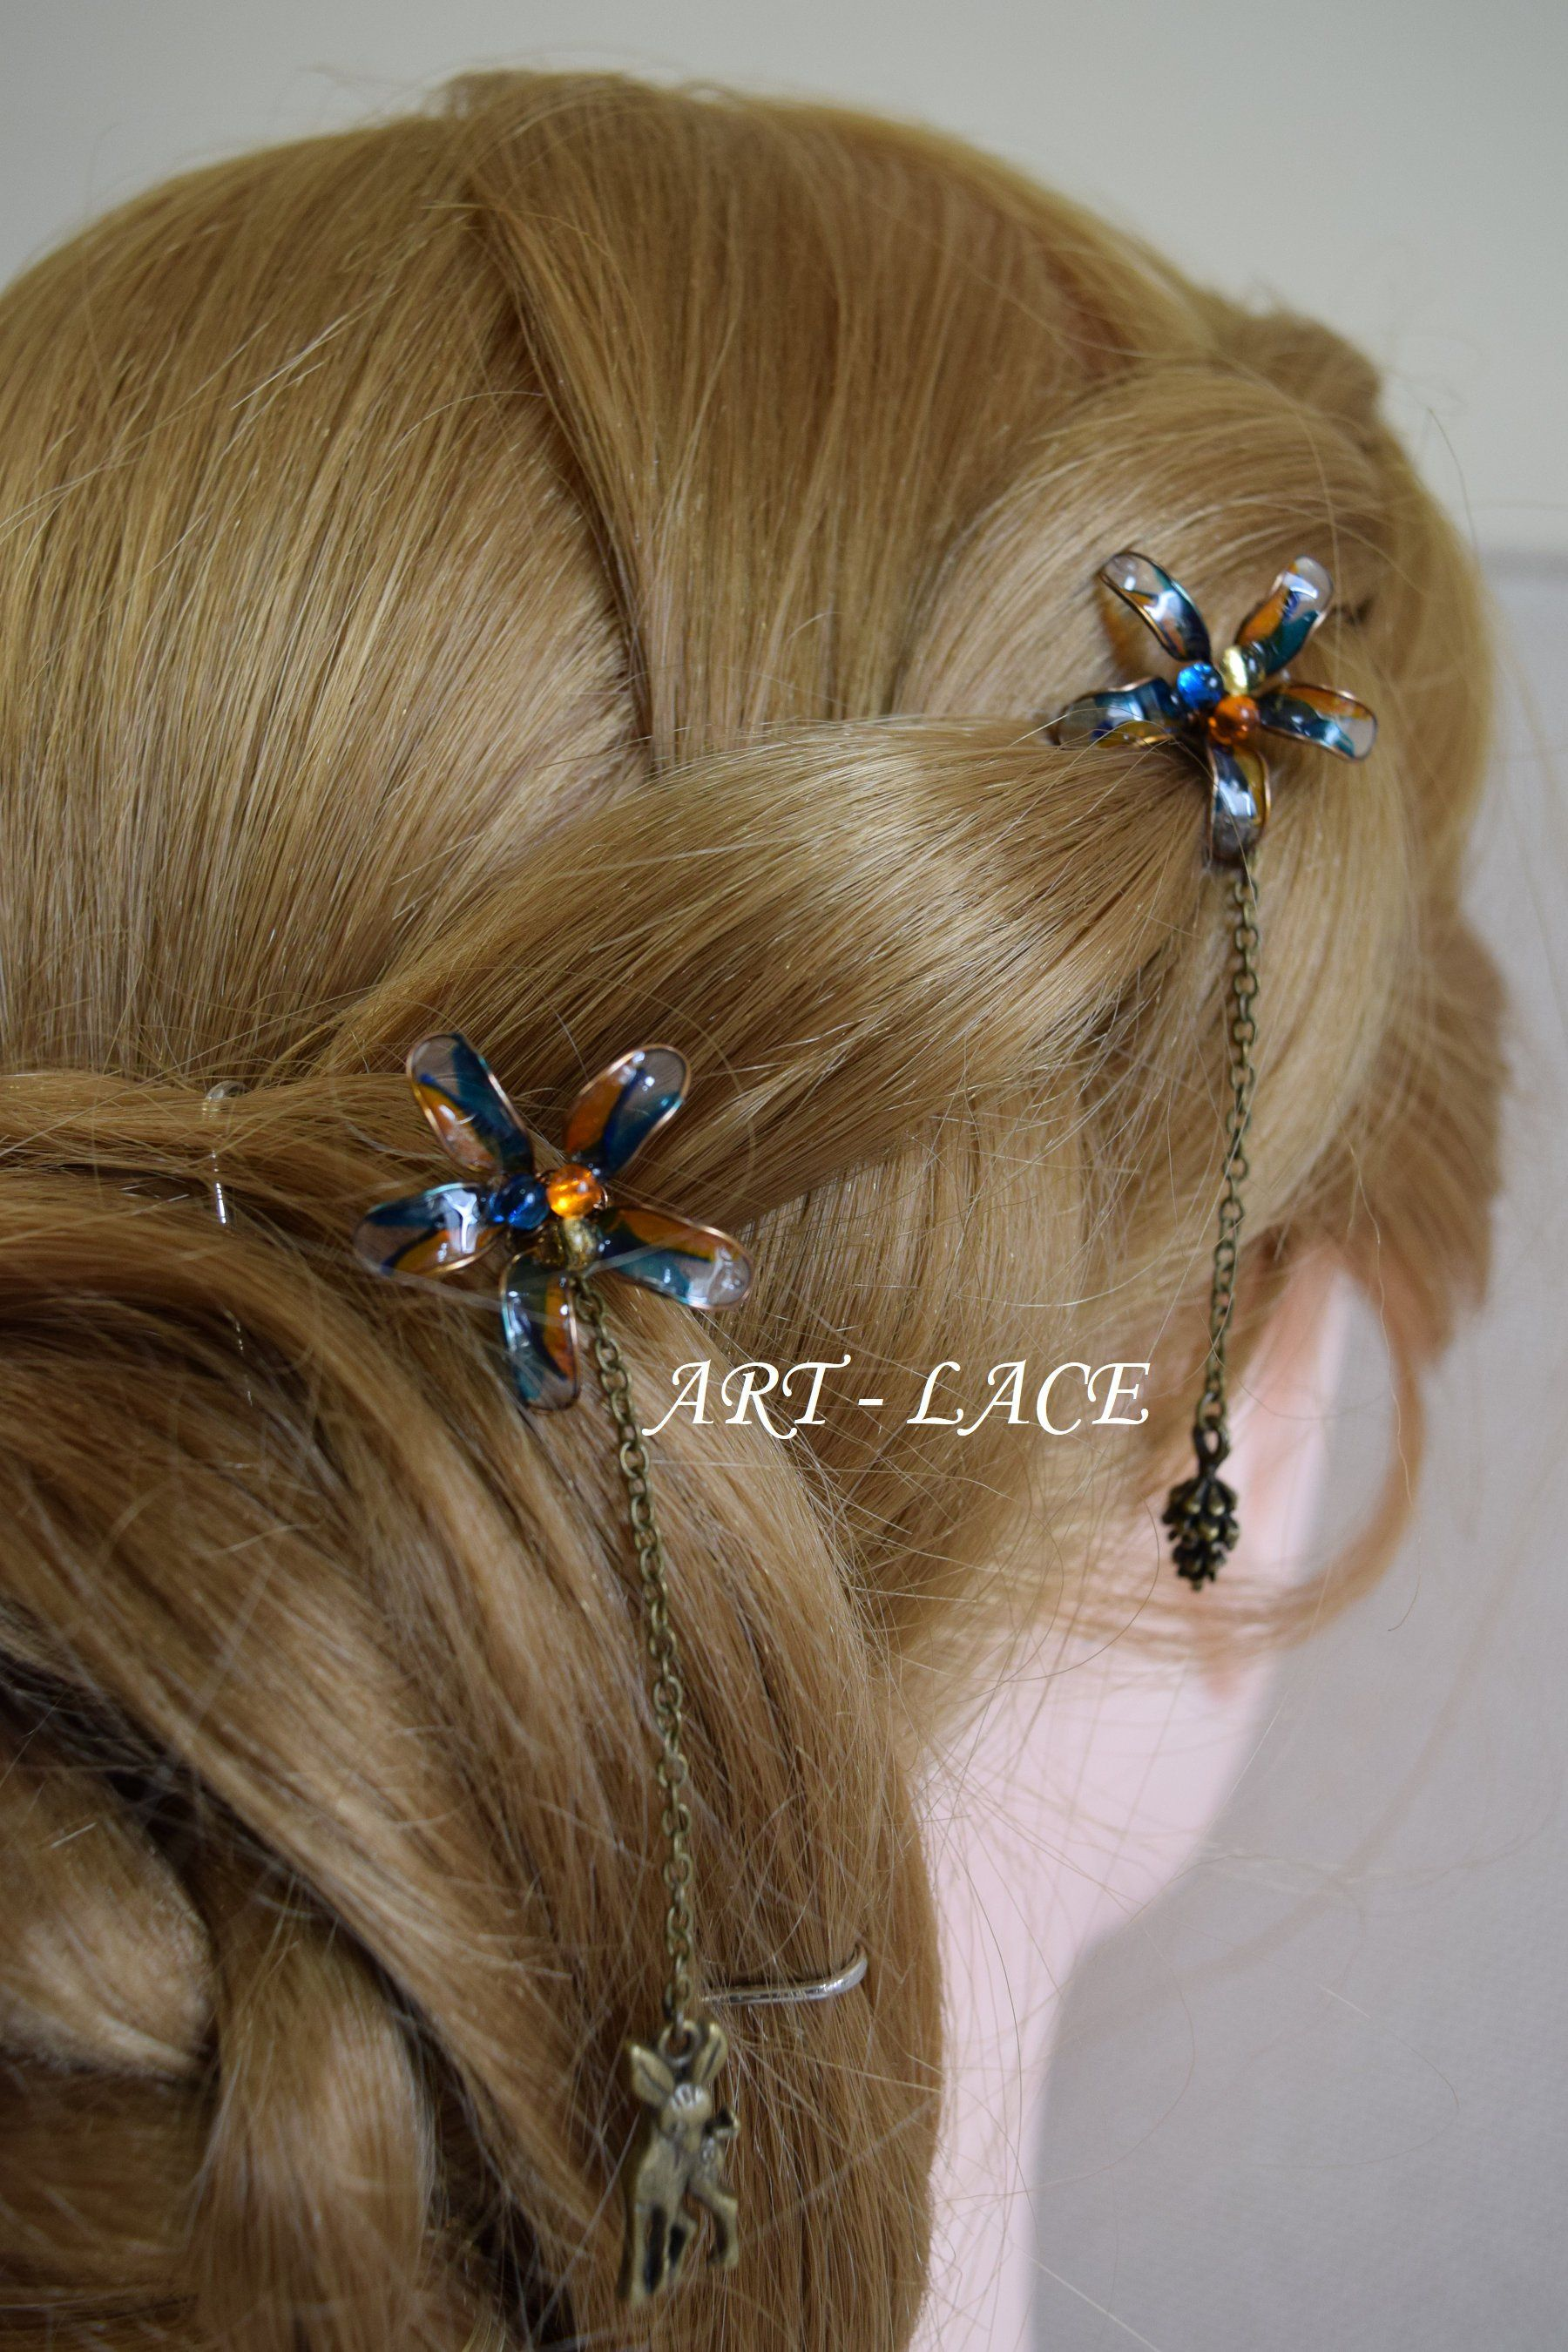 d359ed4be Labor Day Sale 10% off until 4th September in my #etsy shop: Bronze hair  accessories for women #Bridal #Rustic #flowerhairclip #Tealhairpin #Autumn  ...